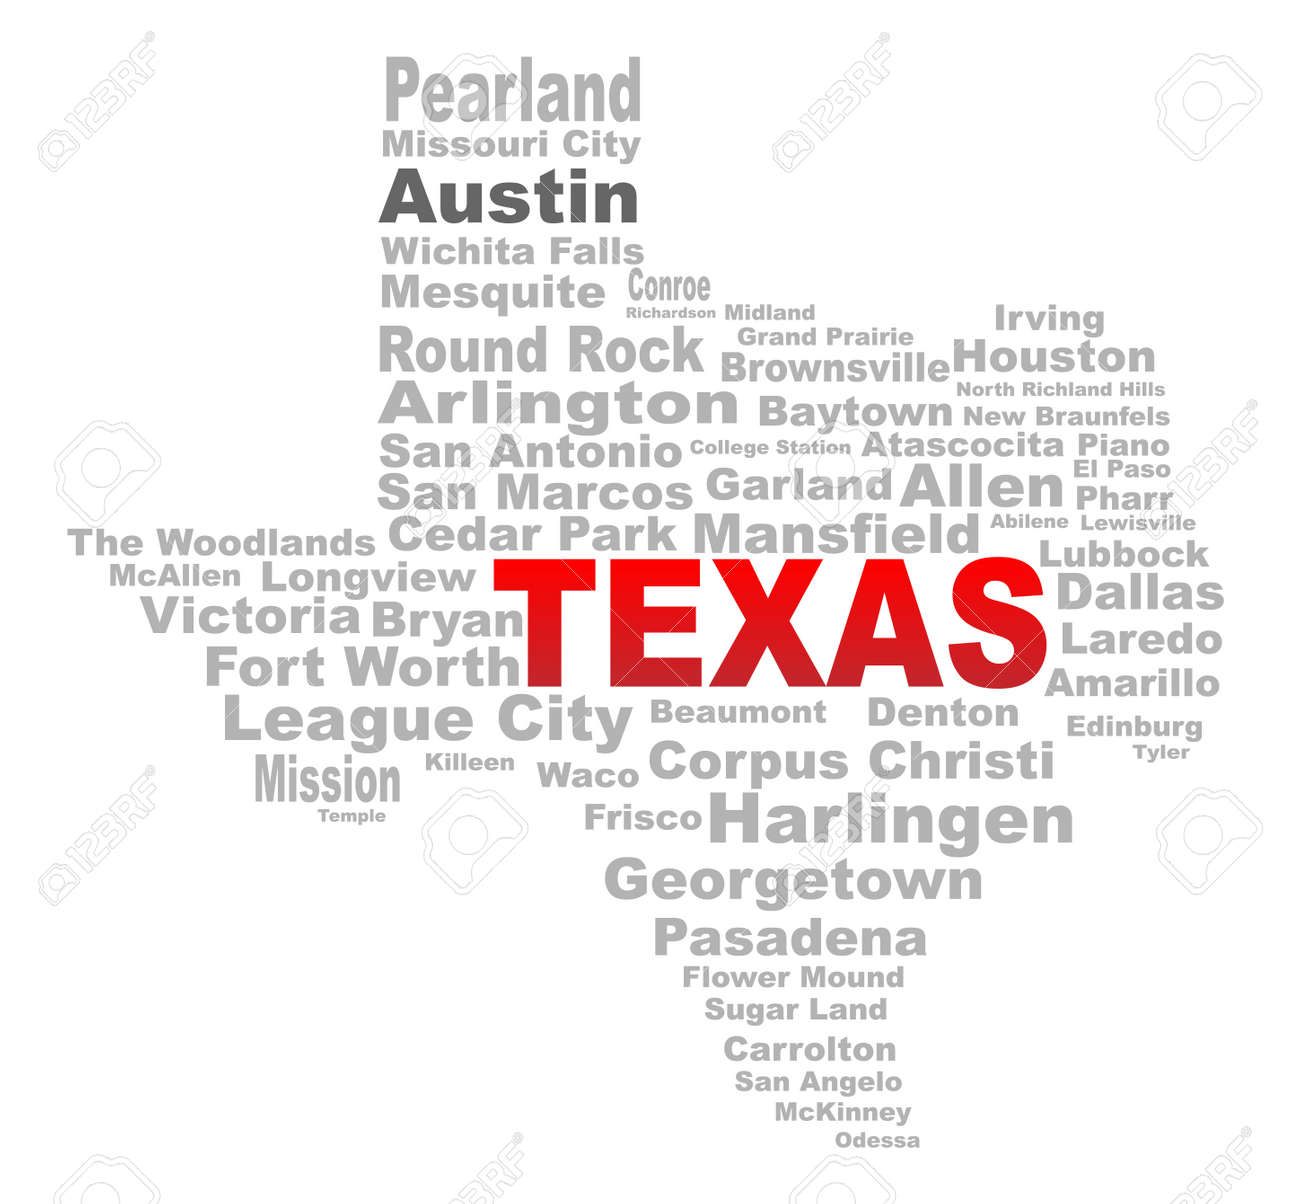 A Texas Map Shape With The Text TEXAS And The Names Of The Major - Map north texas cities